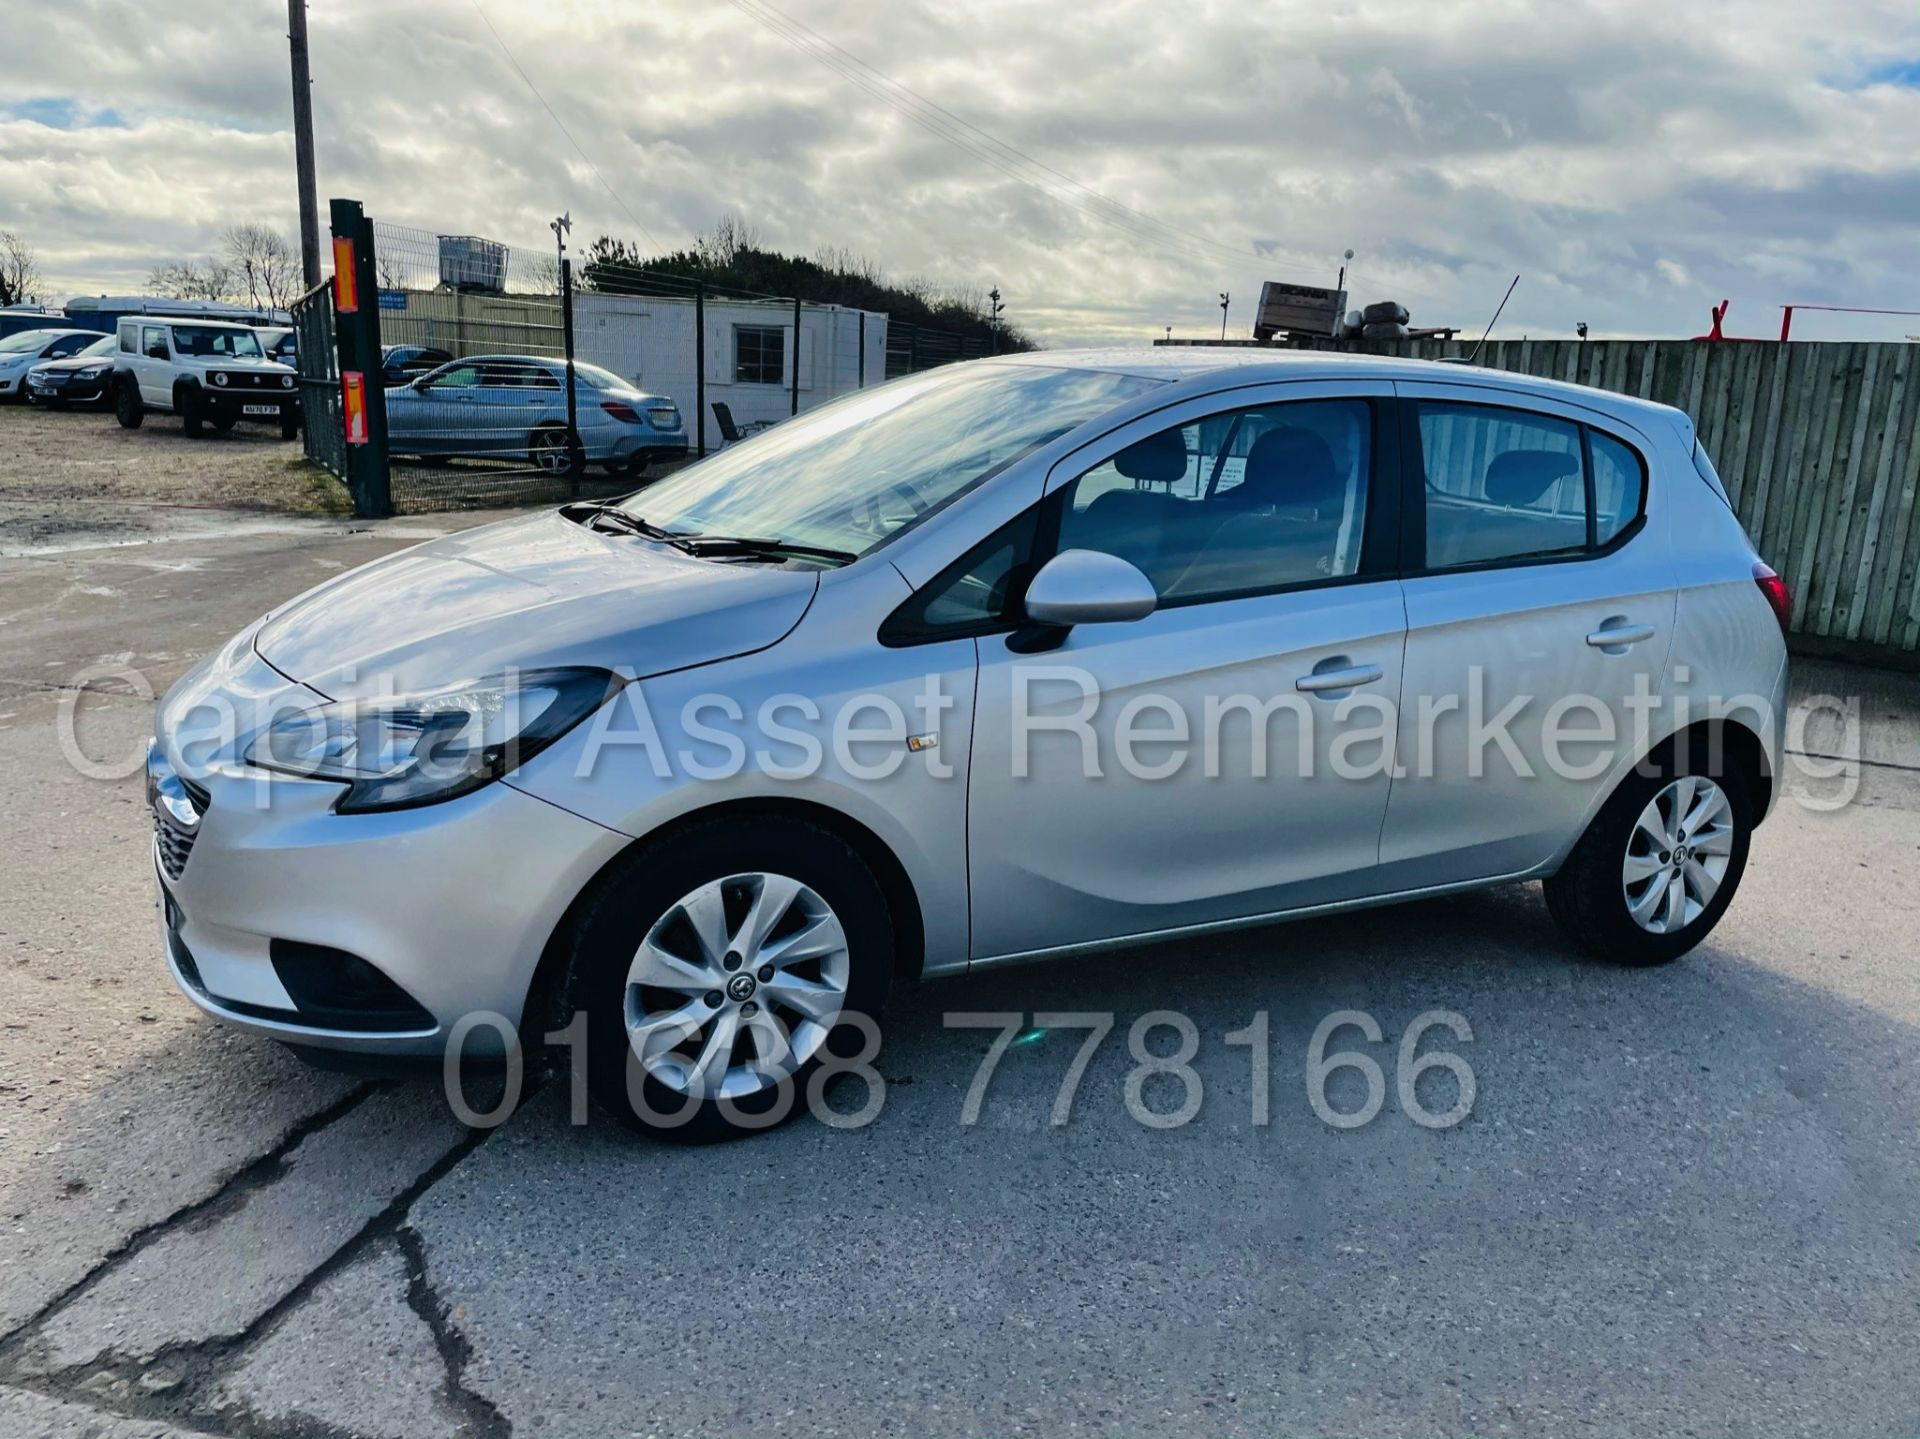 On Sale VAUXHALL CORSA *DESIGN EDITION* 5 DOOR HATCHBACK (2019 - NEW MODEL) 1.4 PETROL - (1 OWNER) - Image 7 of 42